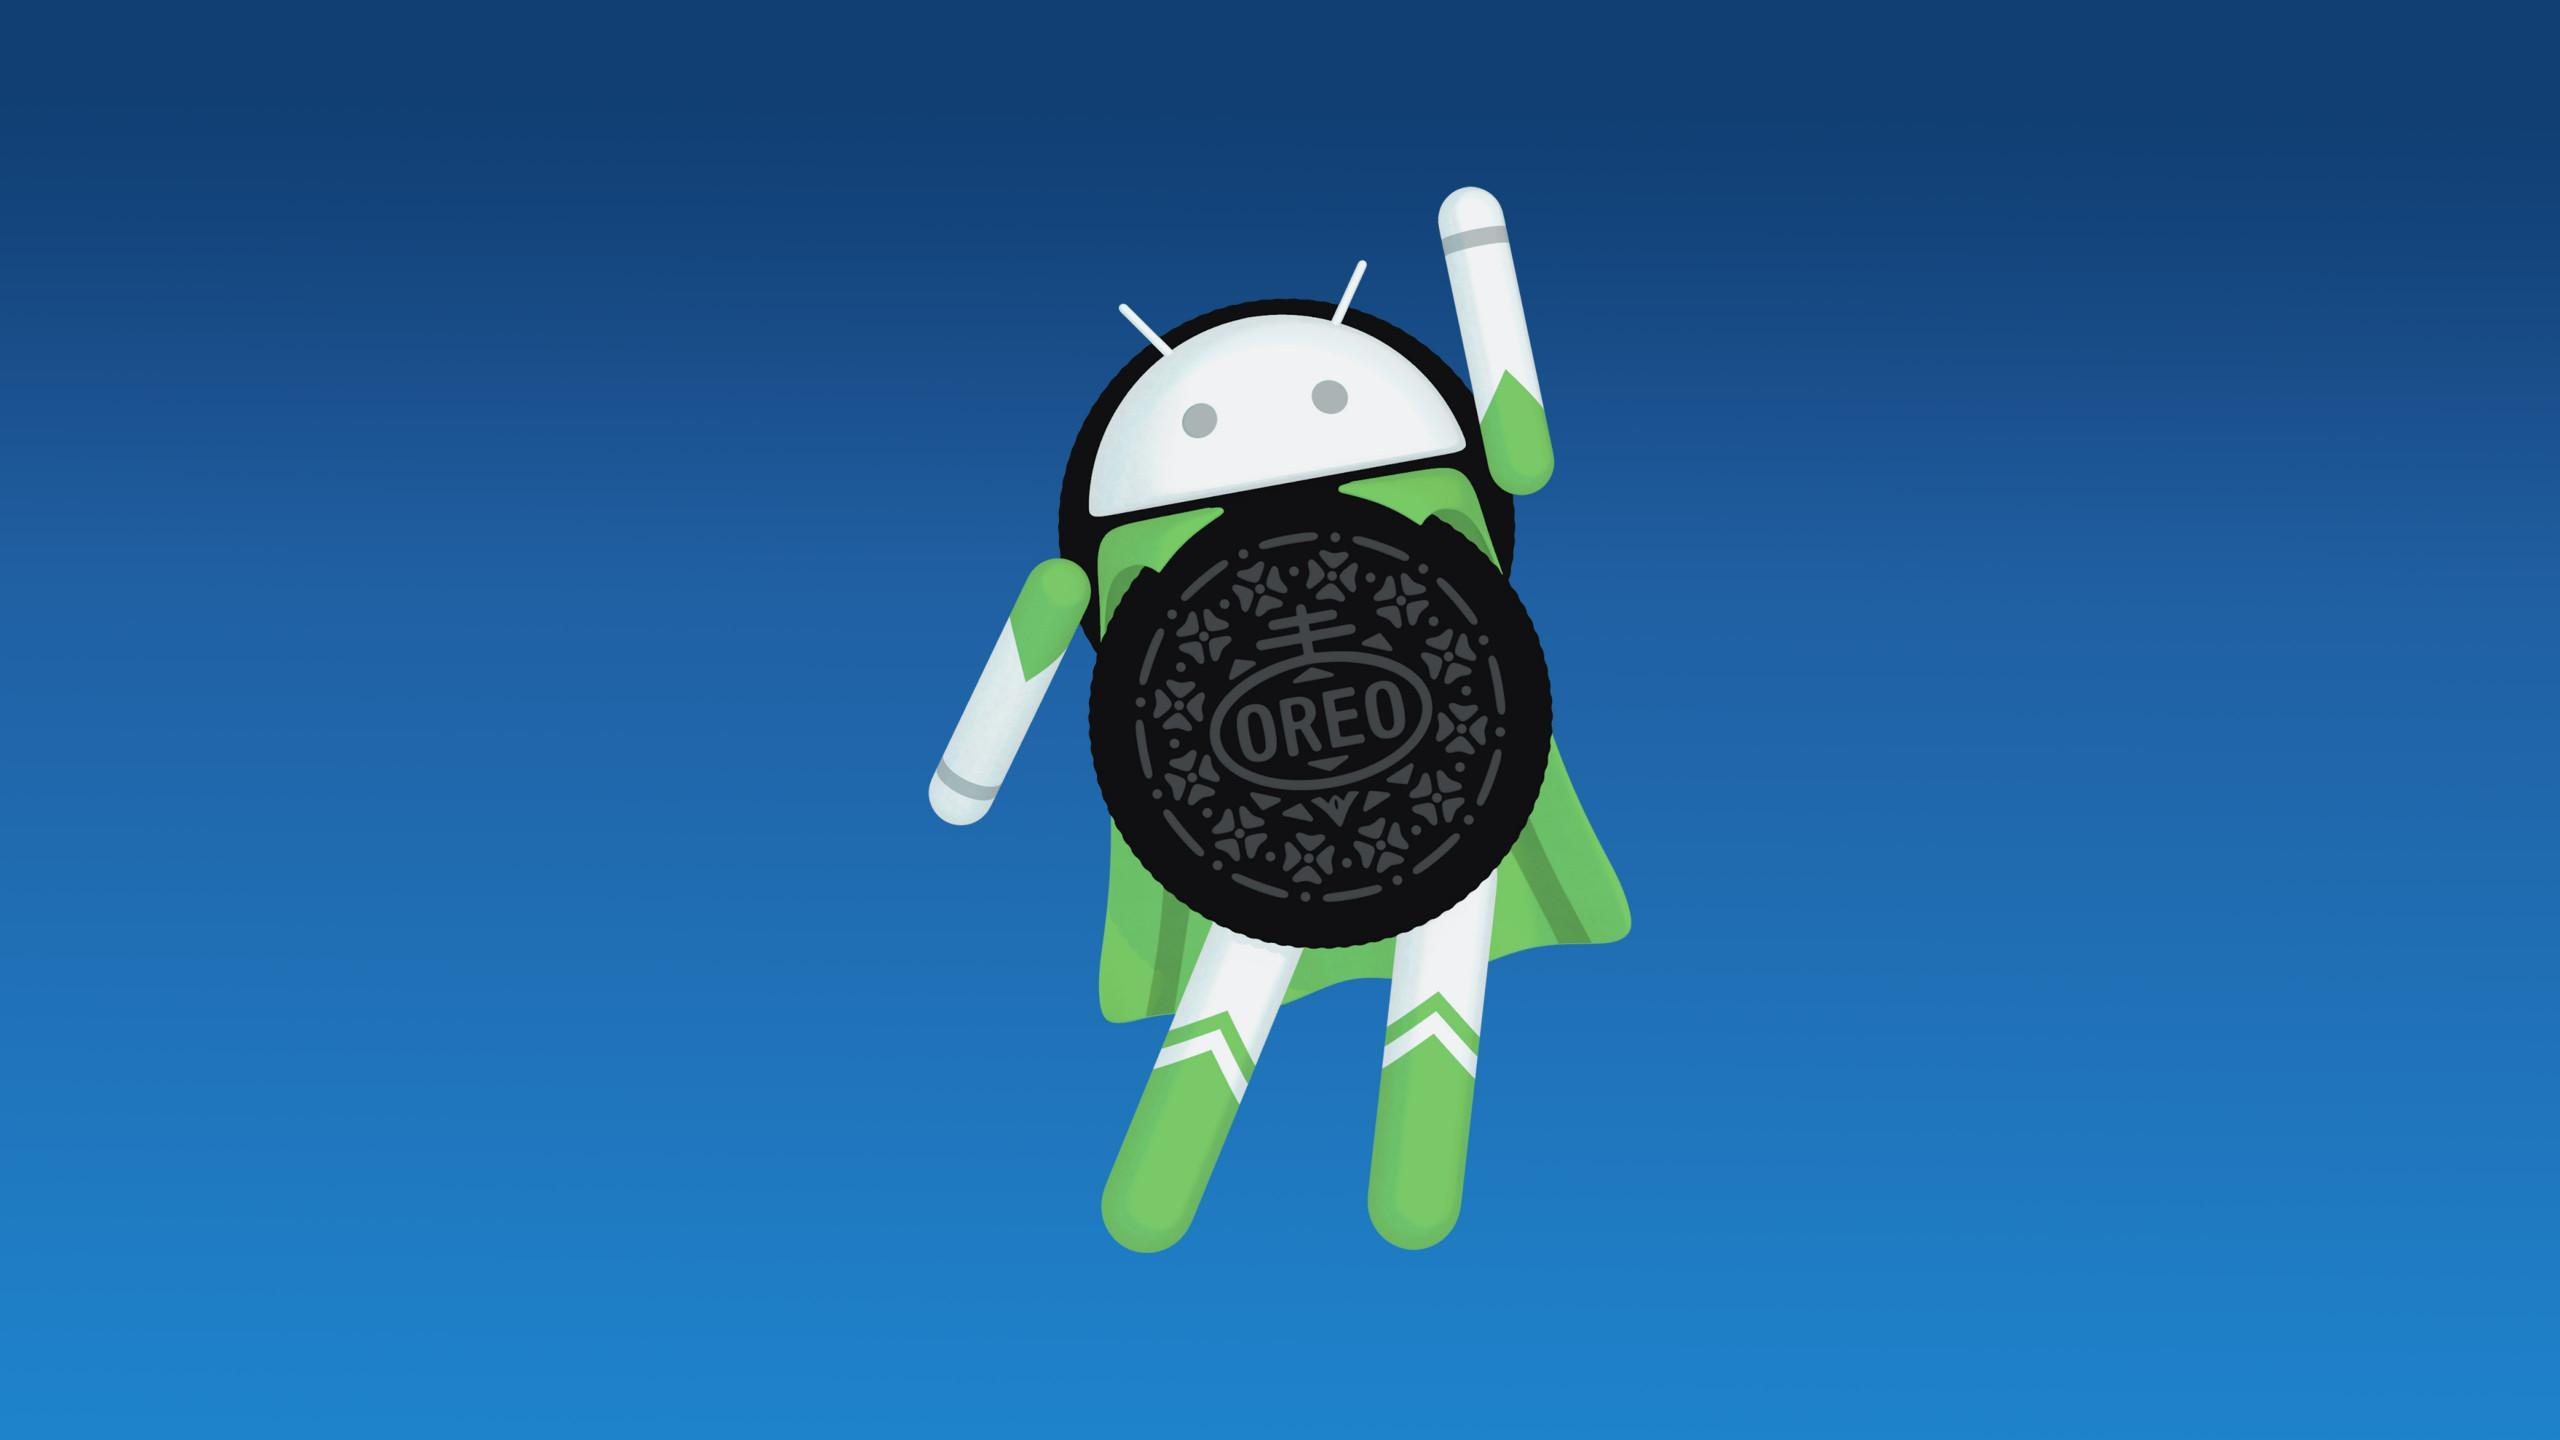 Oreo Wallpaper For Android Apk Download